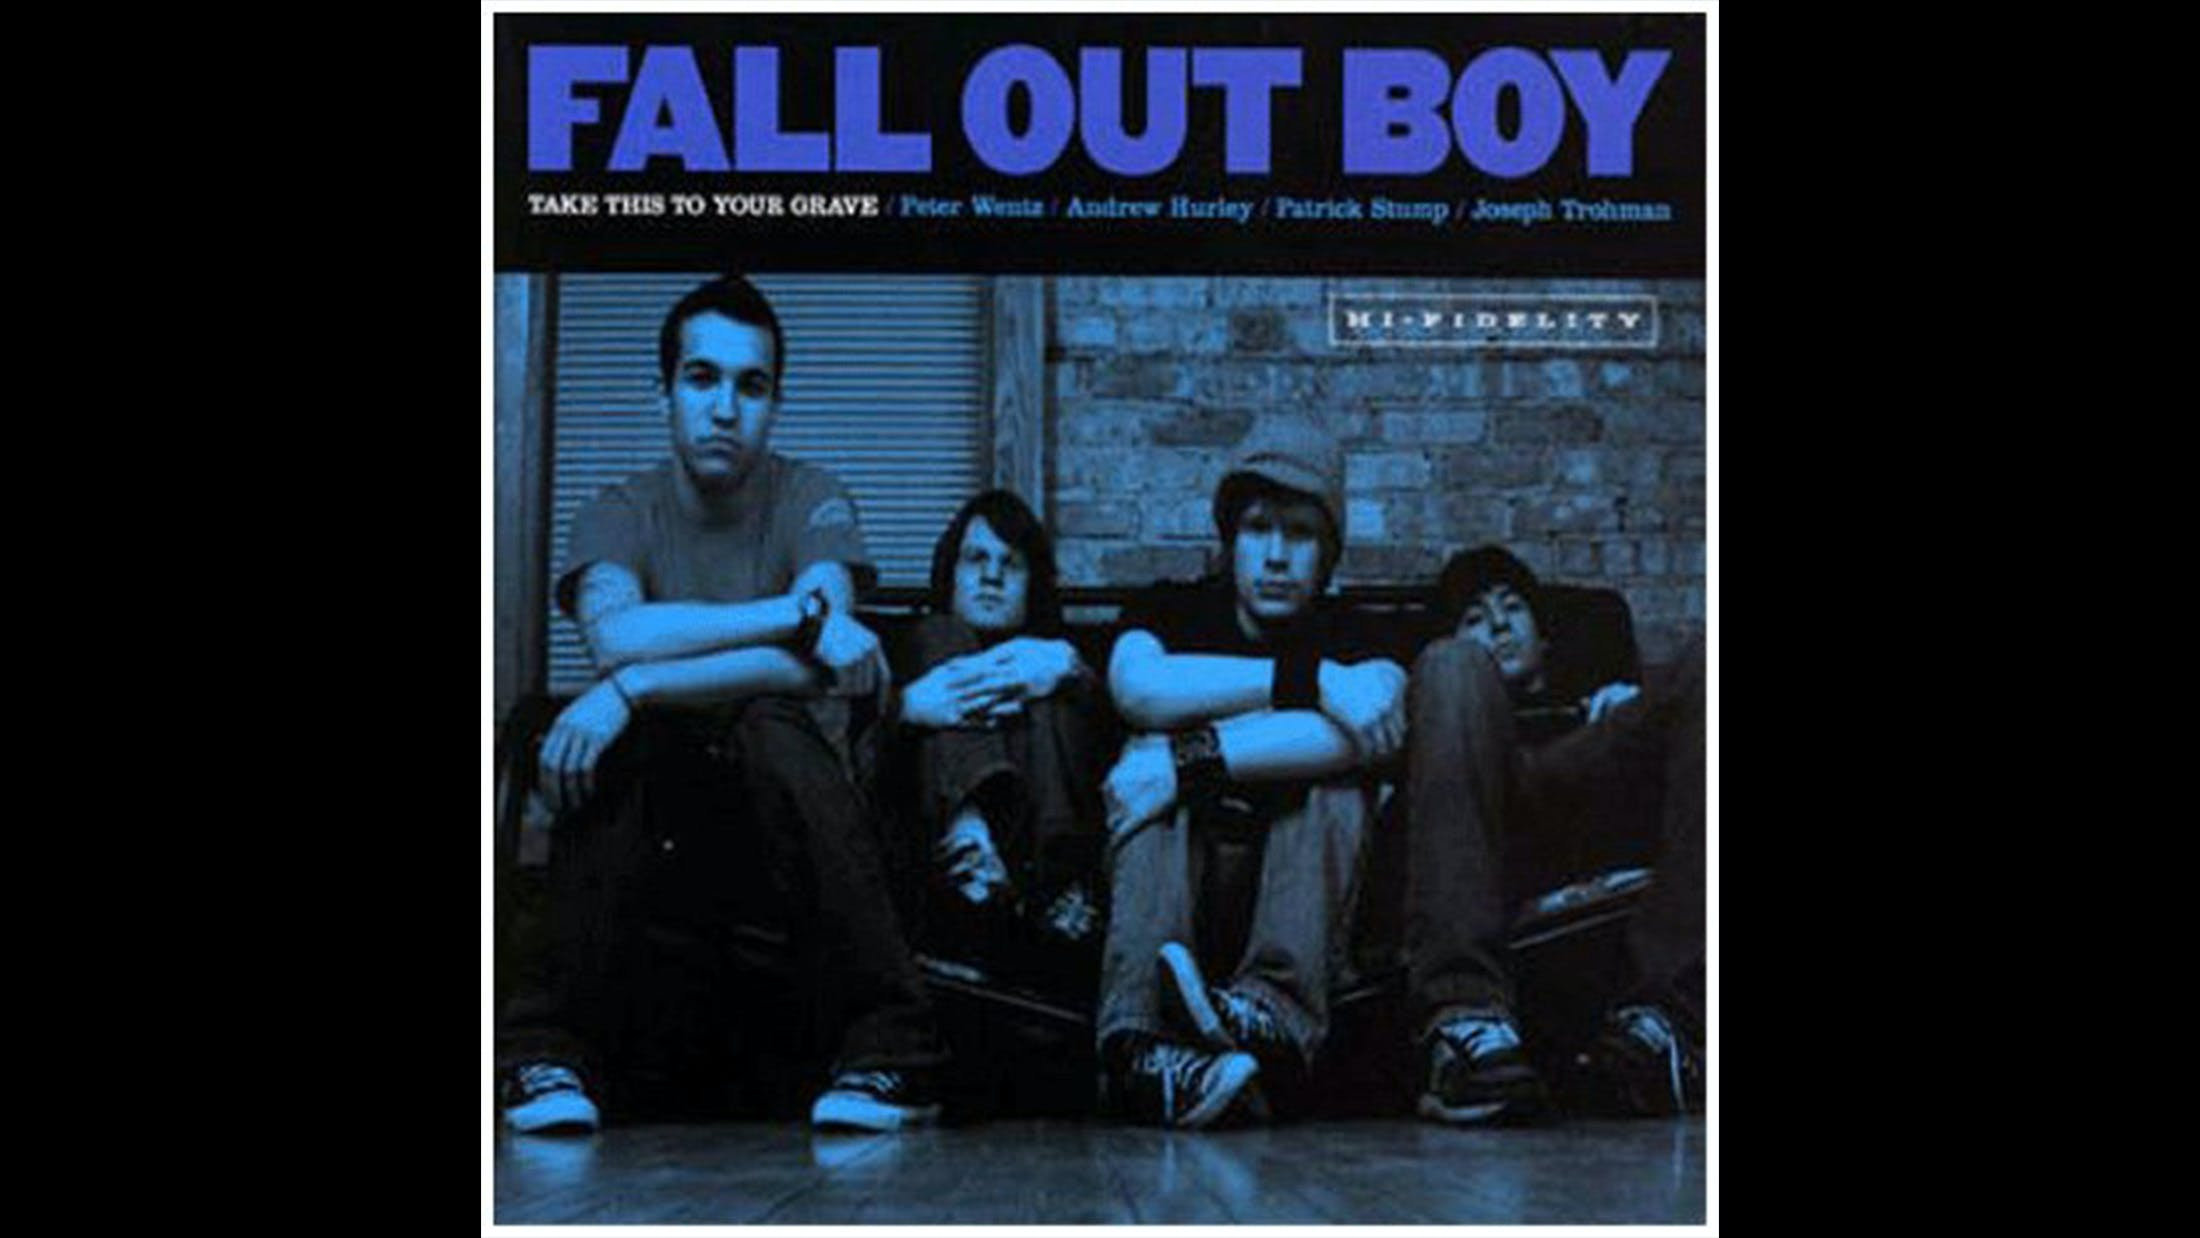 11. Fall Out Boy - Take This To Your Grave (2003)